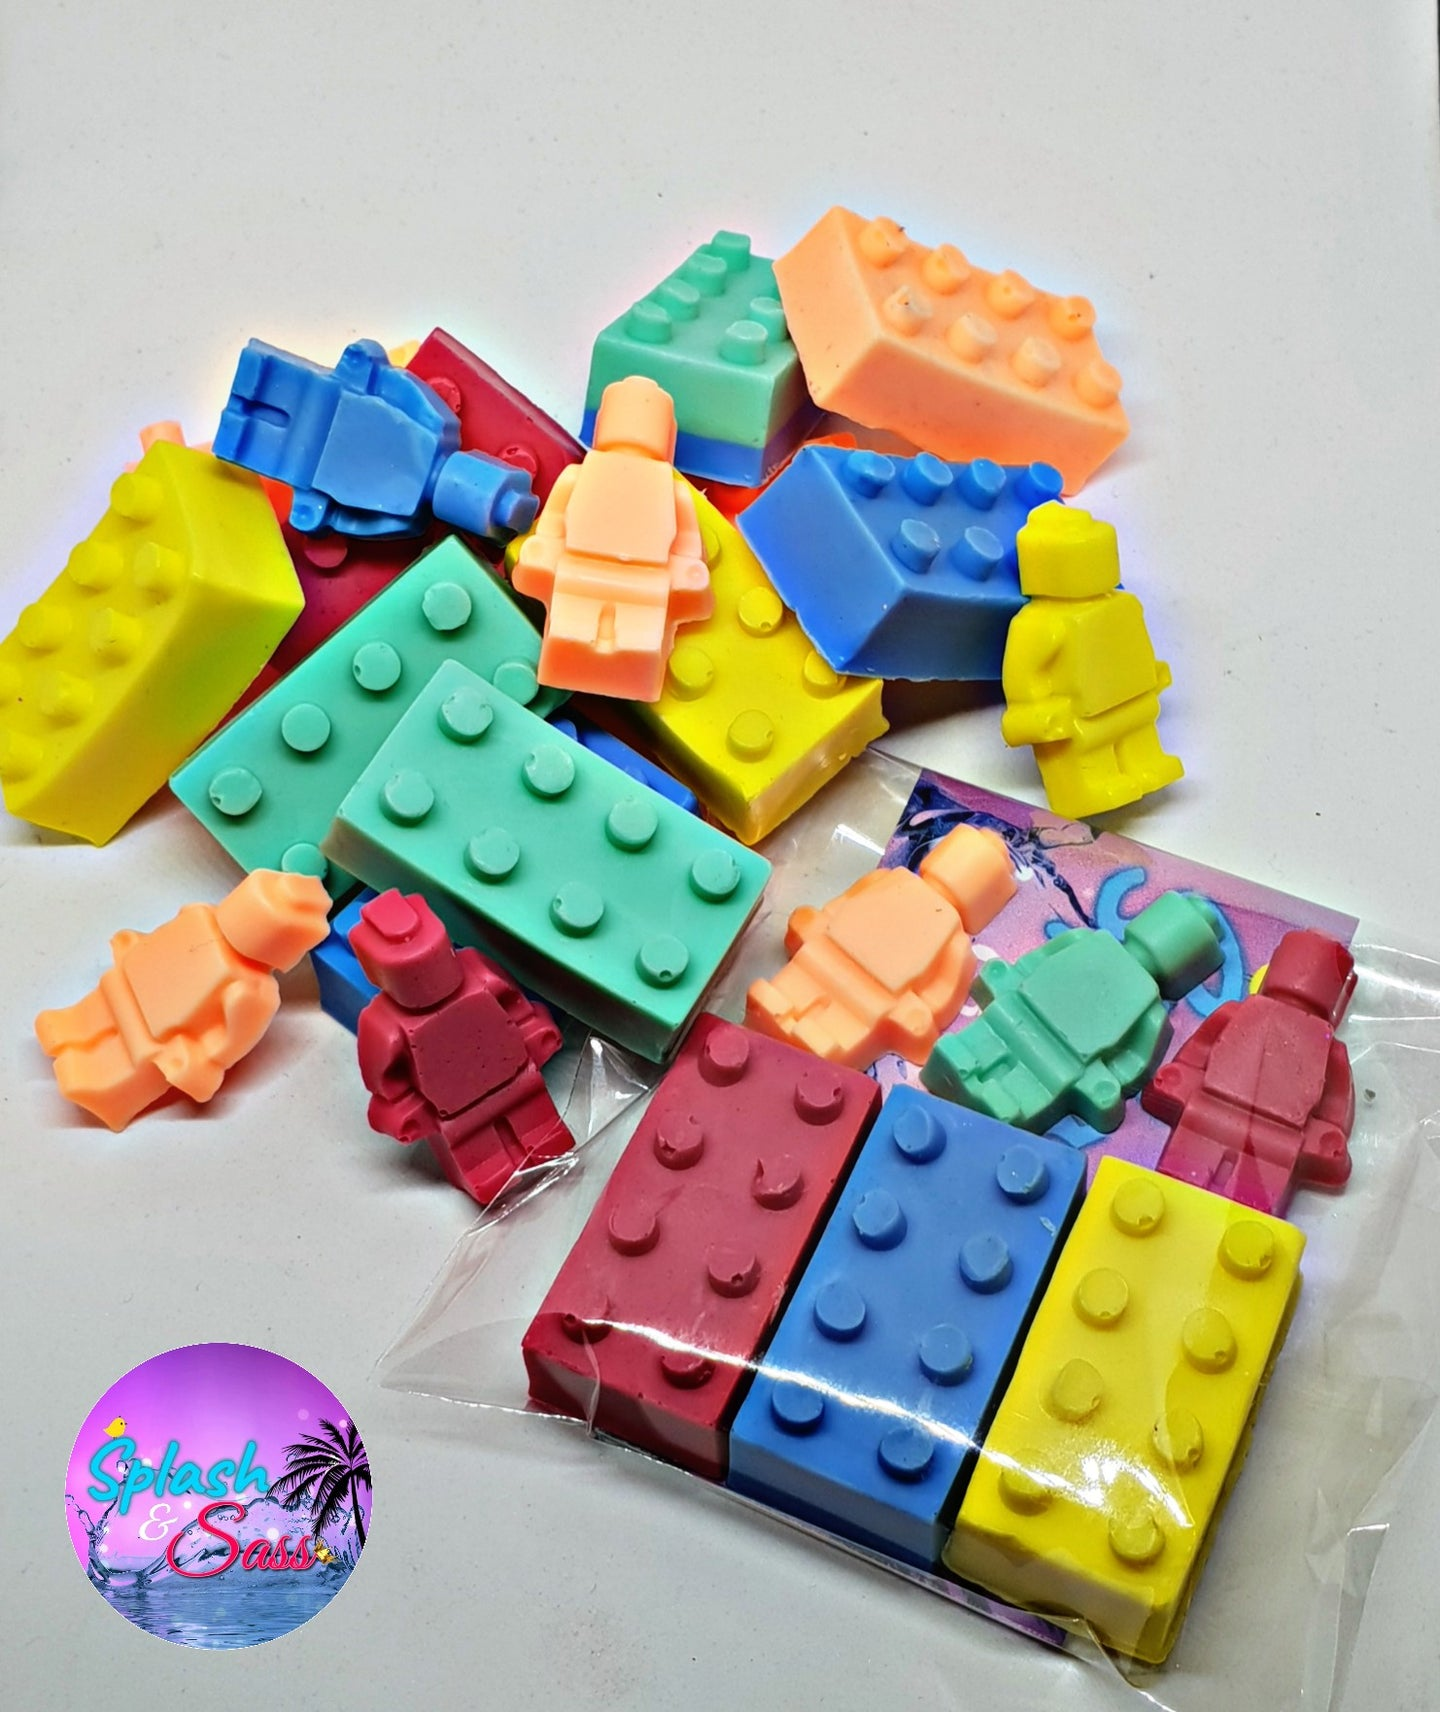 Bricks Soap Packs - Splash-&-Sass